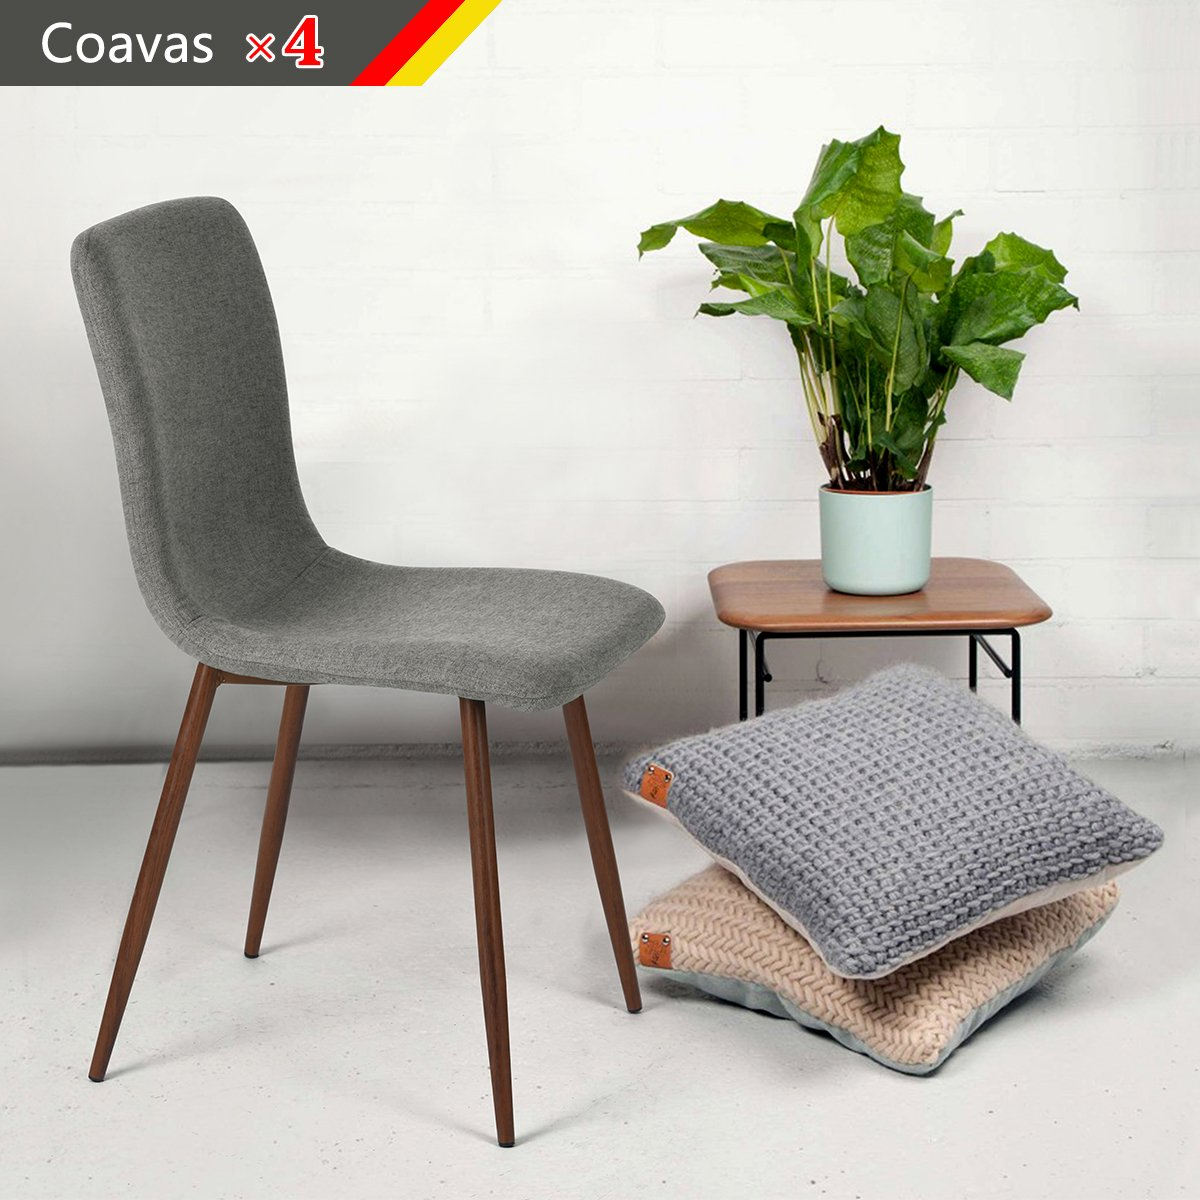 Dining Chairs – Shop Dining Room Chairs | Amazon UK